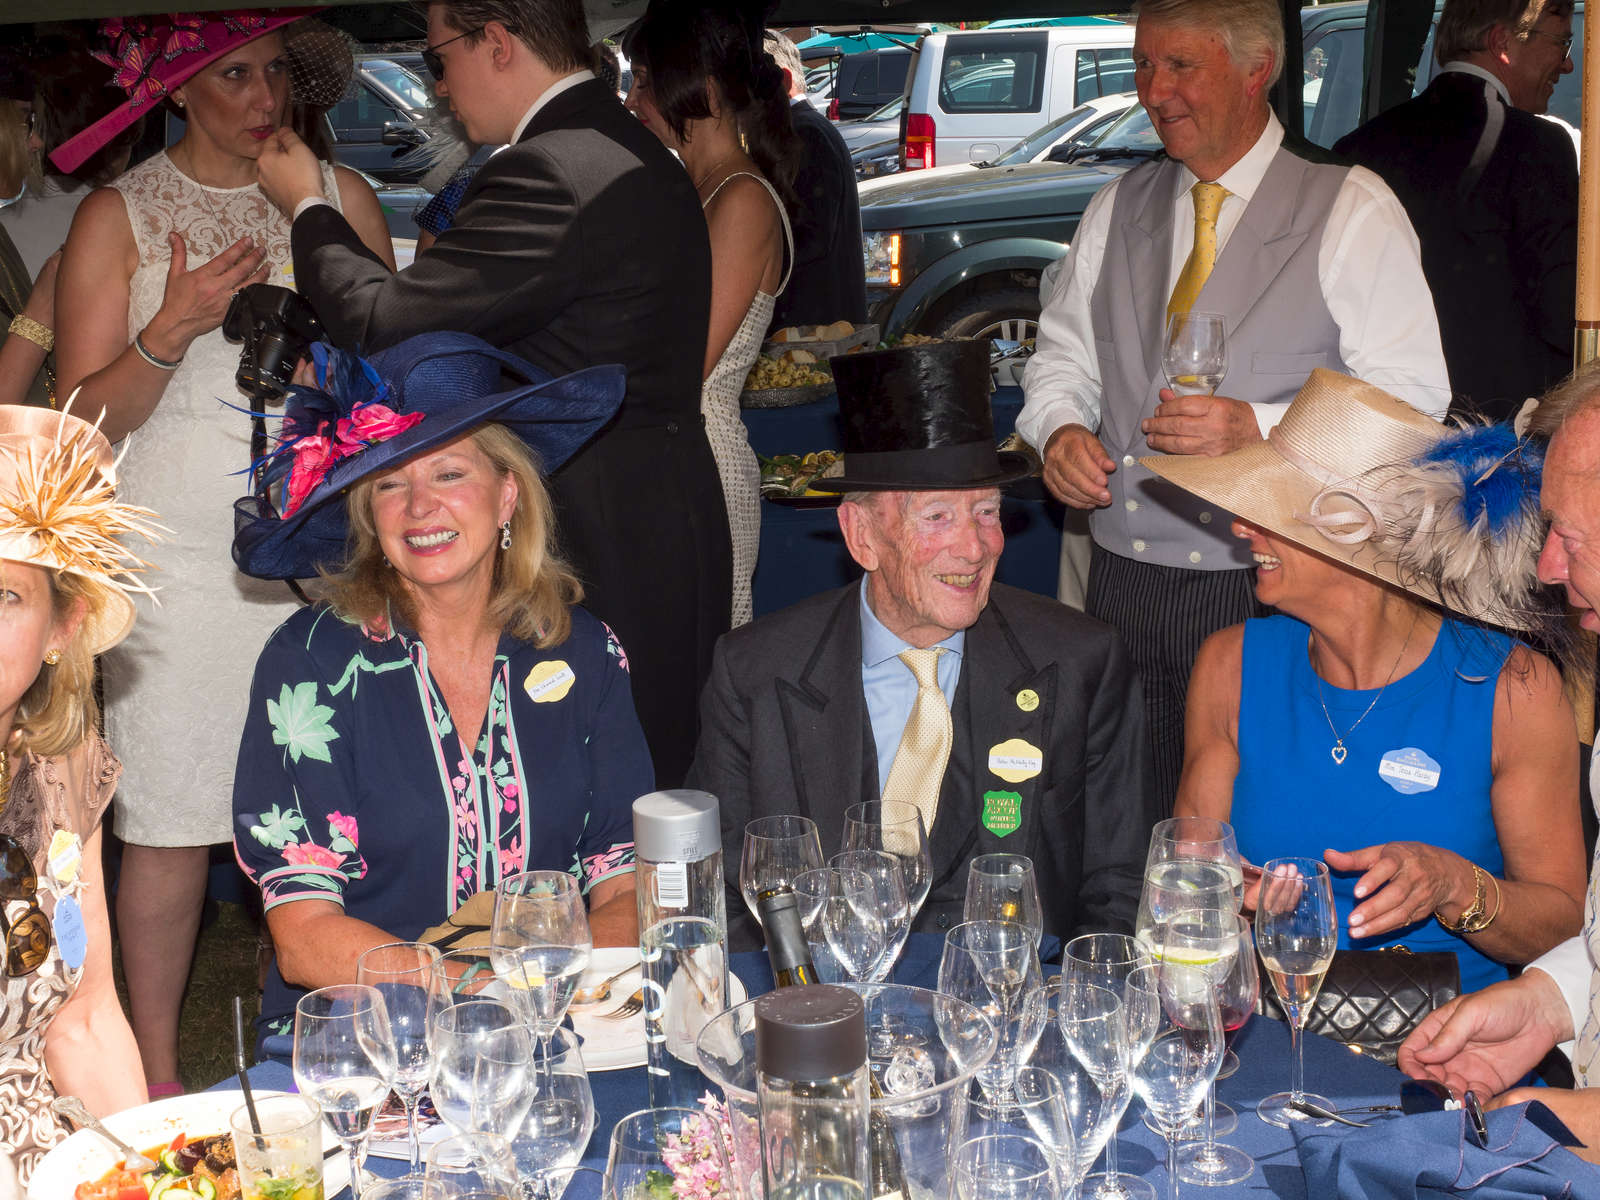 Peter McNally Esq at a champagne luncheon prior to the Royal Ascot meting in the No 1 Car Park for guests of George & Tatiana Piskov & Liz Brewer.One of Britain's most well-known racecourses, Ascot holds a special week of races in June each year called Royal Ascot, attended by The Queen. The week has become Britain's most popular race meeting, welcoming around 300,000 visitors over five days, all dressed up in their finest clothes and hats.